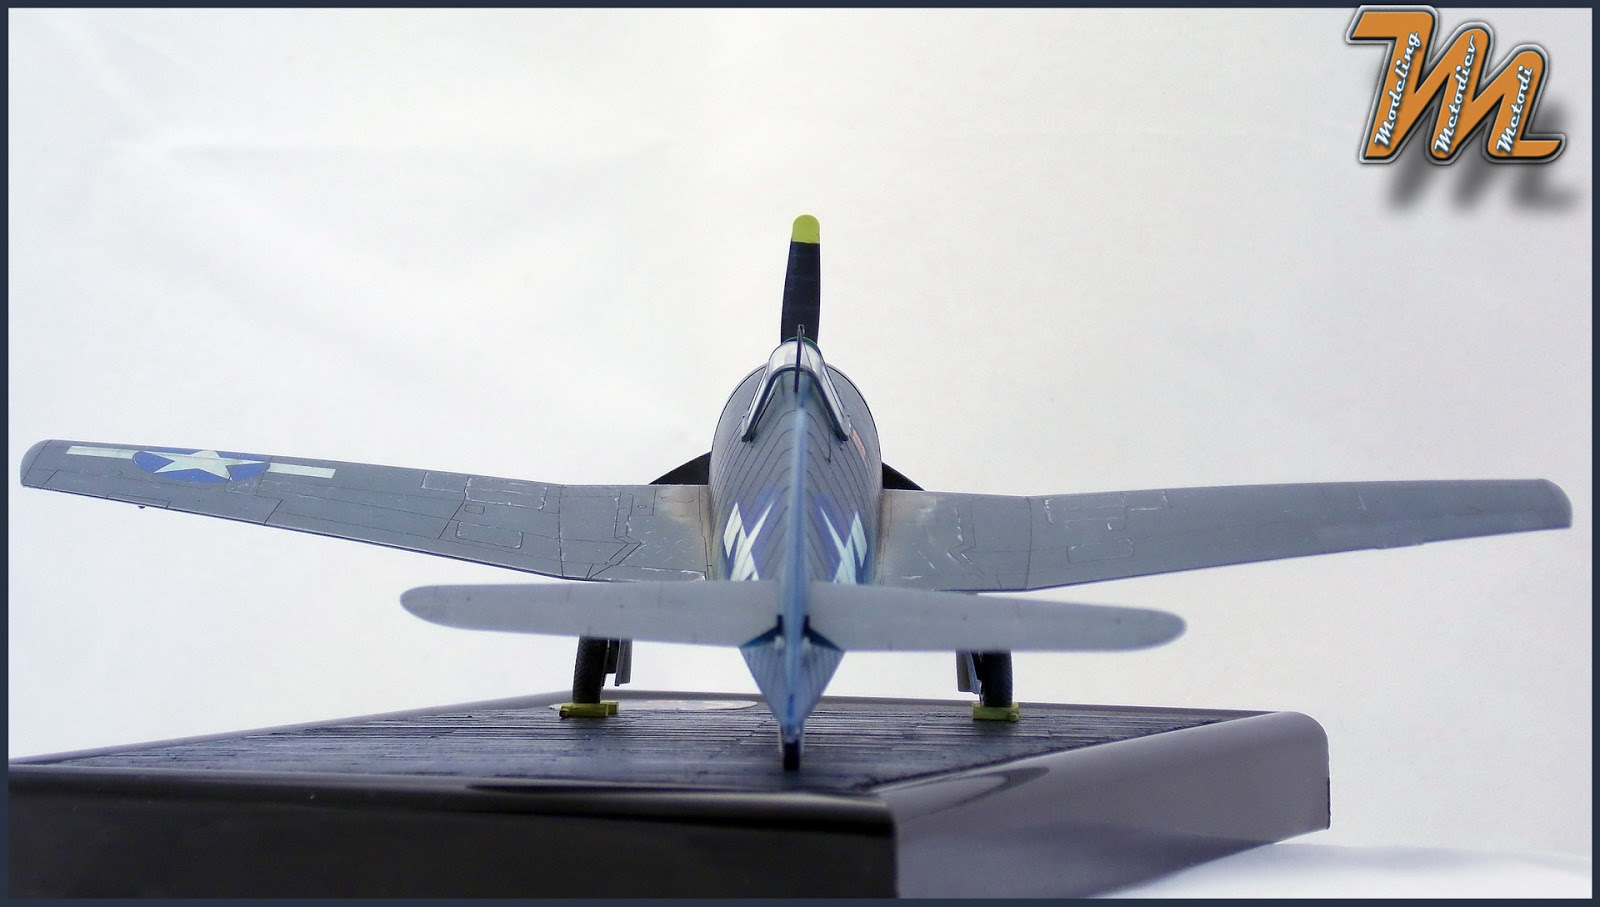 F6F, Hellcat VF-27, airplane scale model